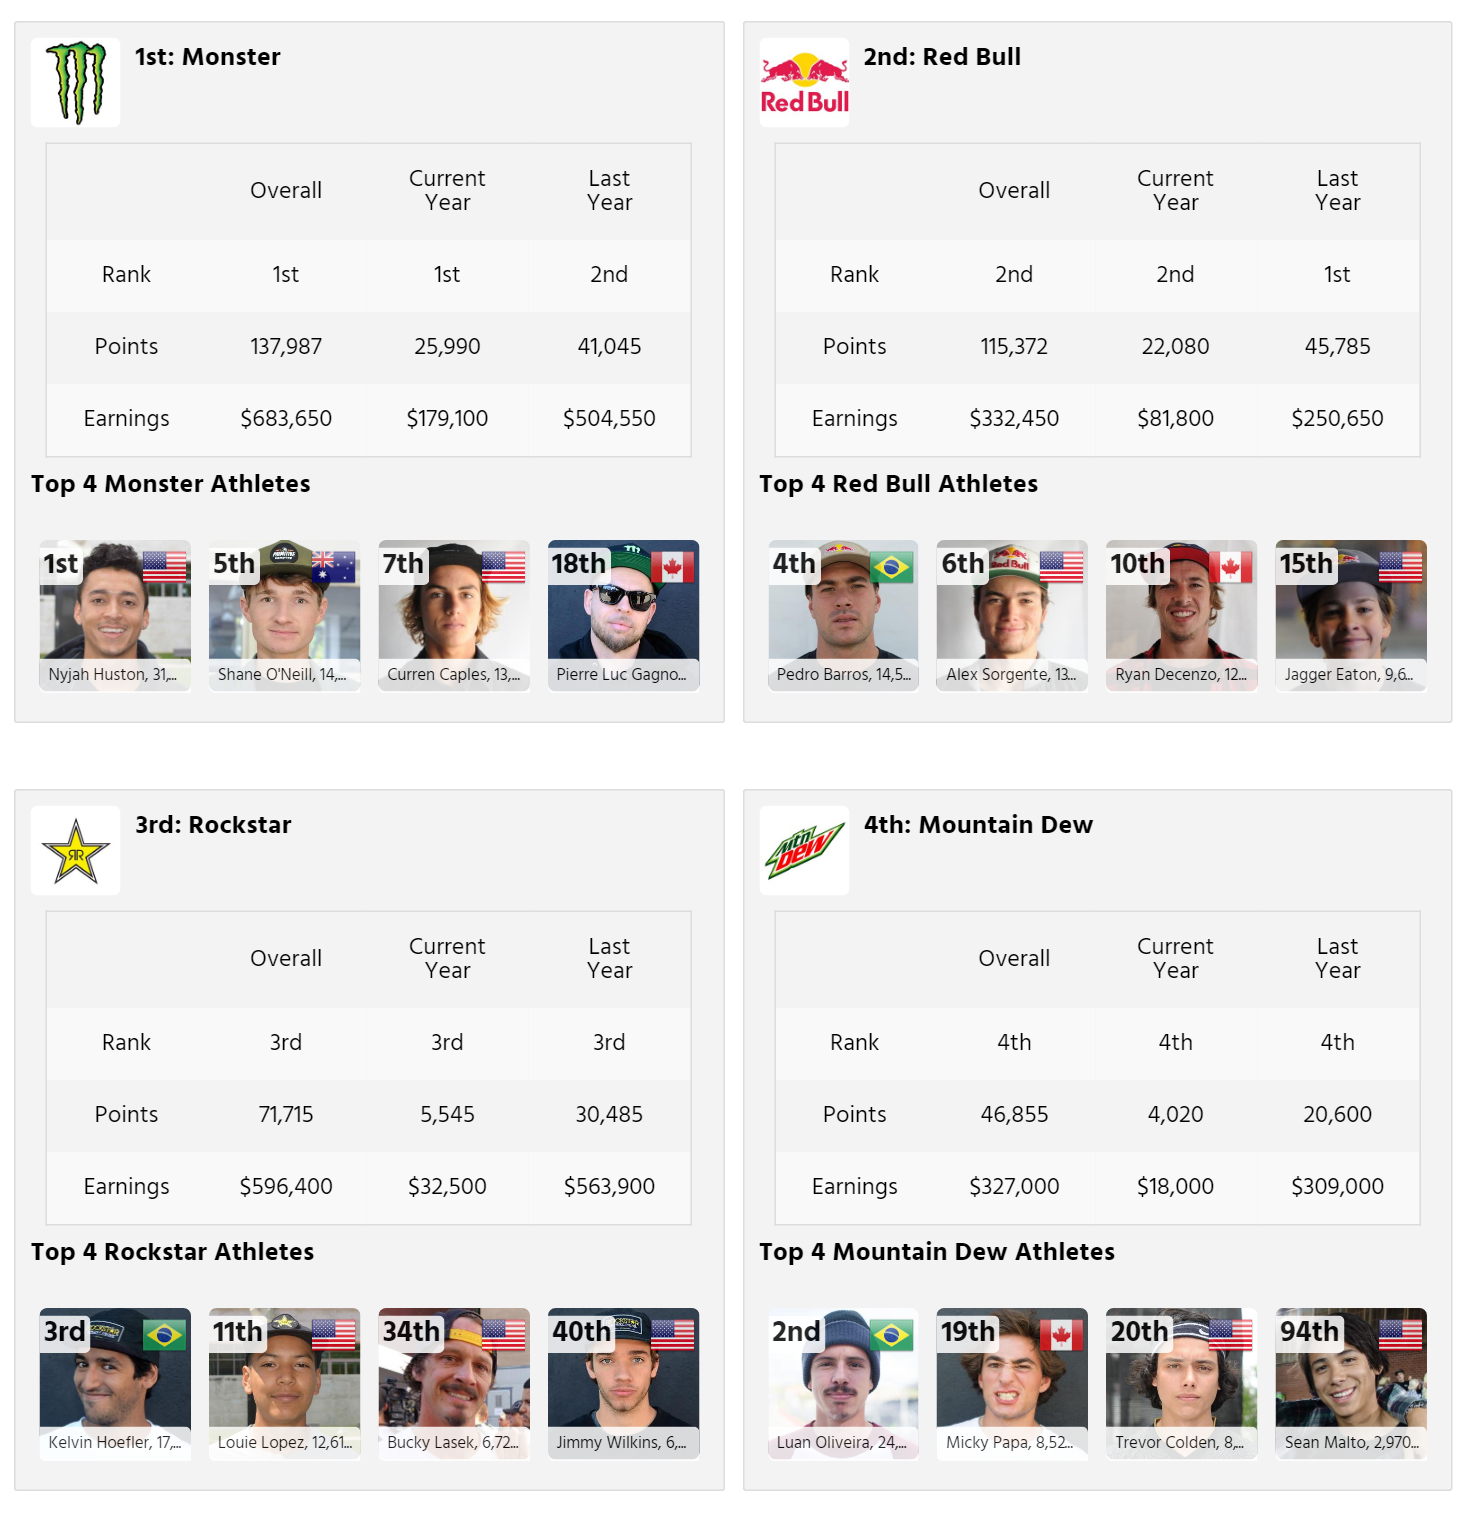 Beverage Brands With the Highest Ranking Skateboard Teams